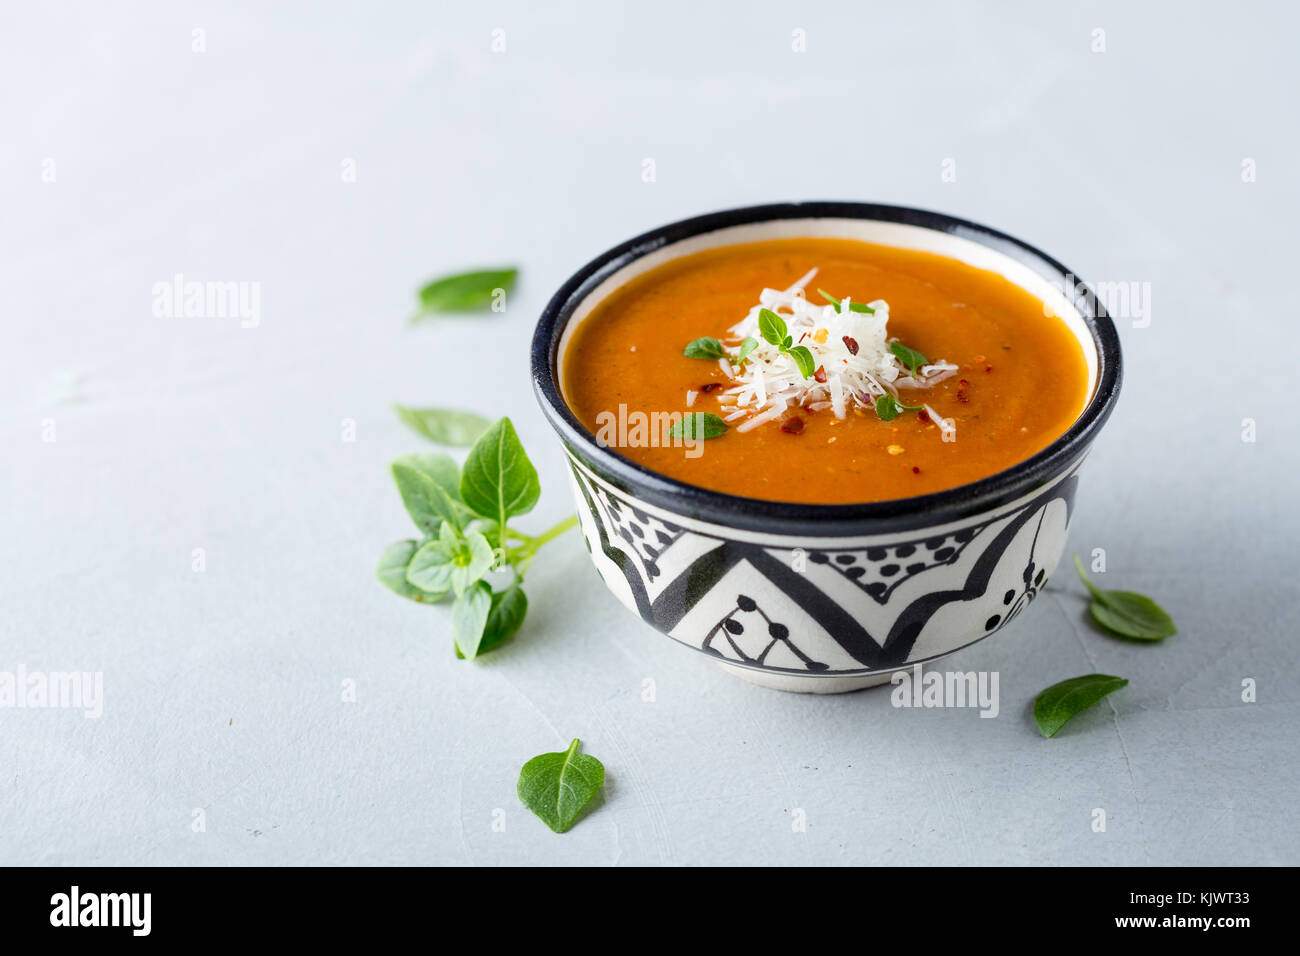 Pureed tomato soup in a bowl garnished with cheese and basil - Stock Image